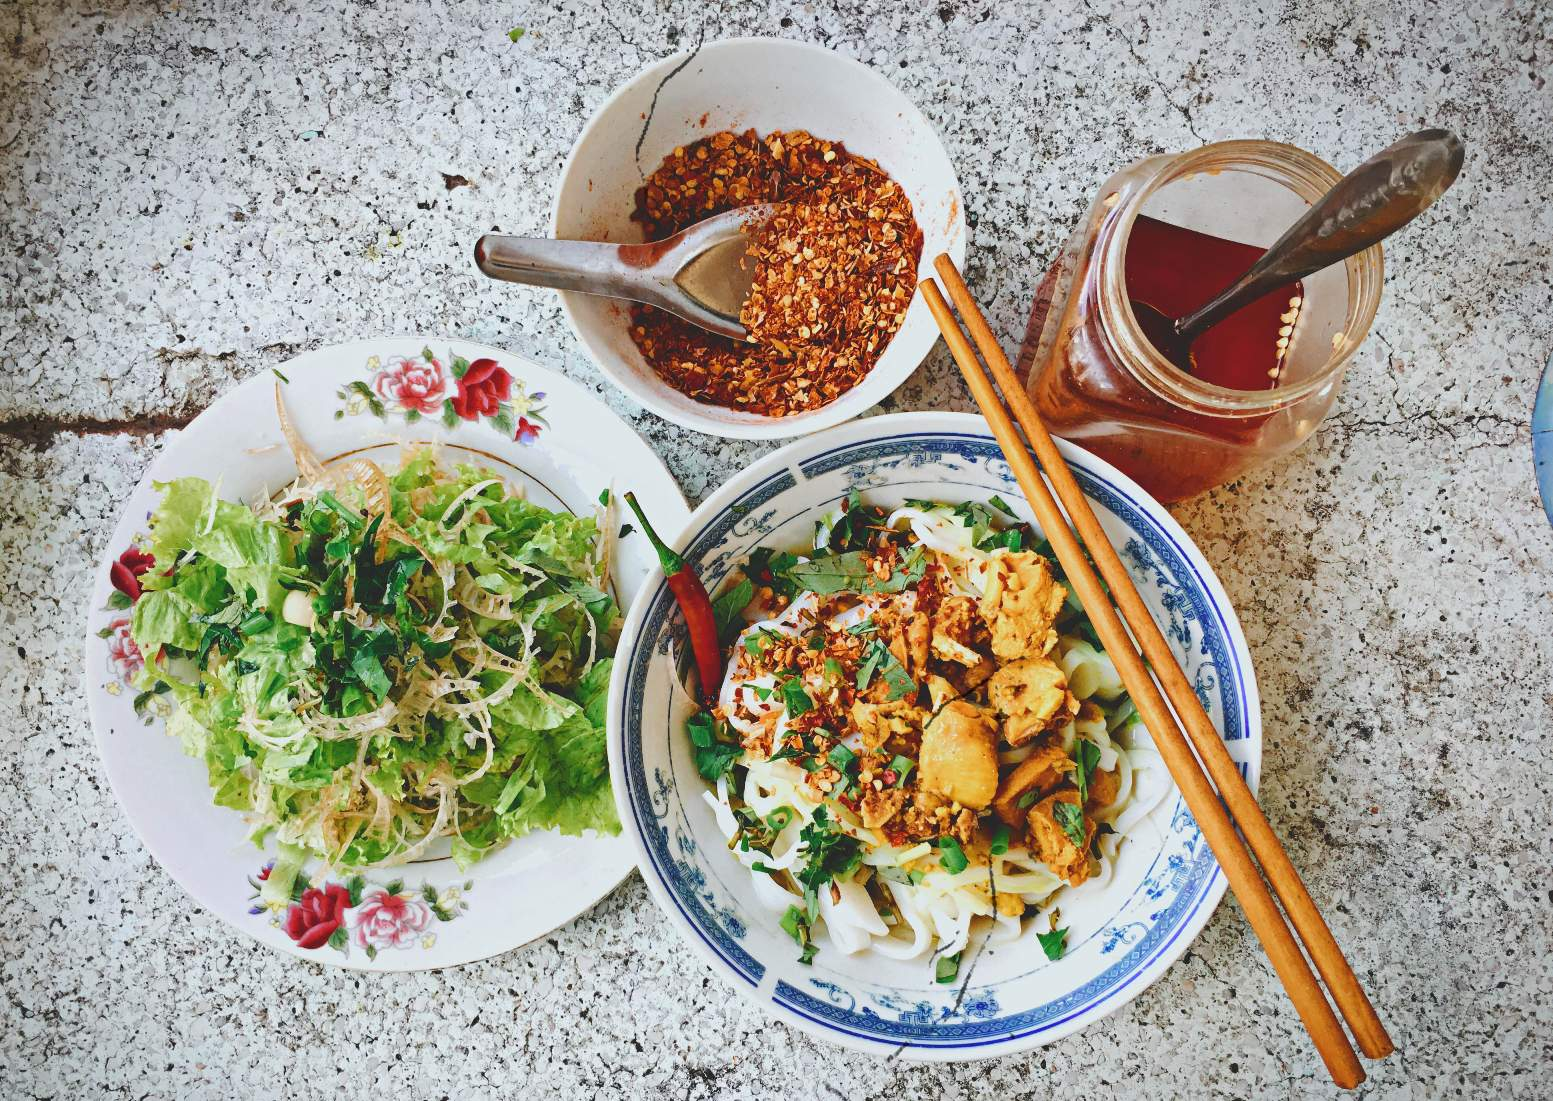 Quang noodle is served with fresh vegetables, chili and vinegar